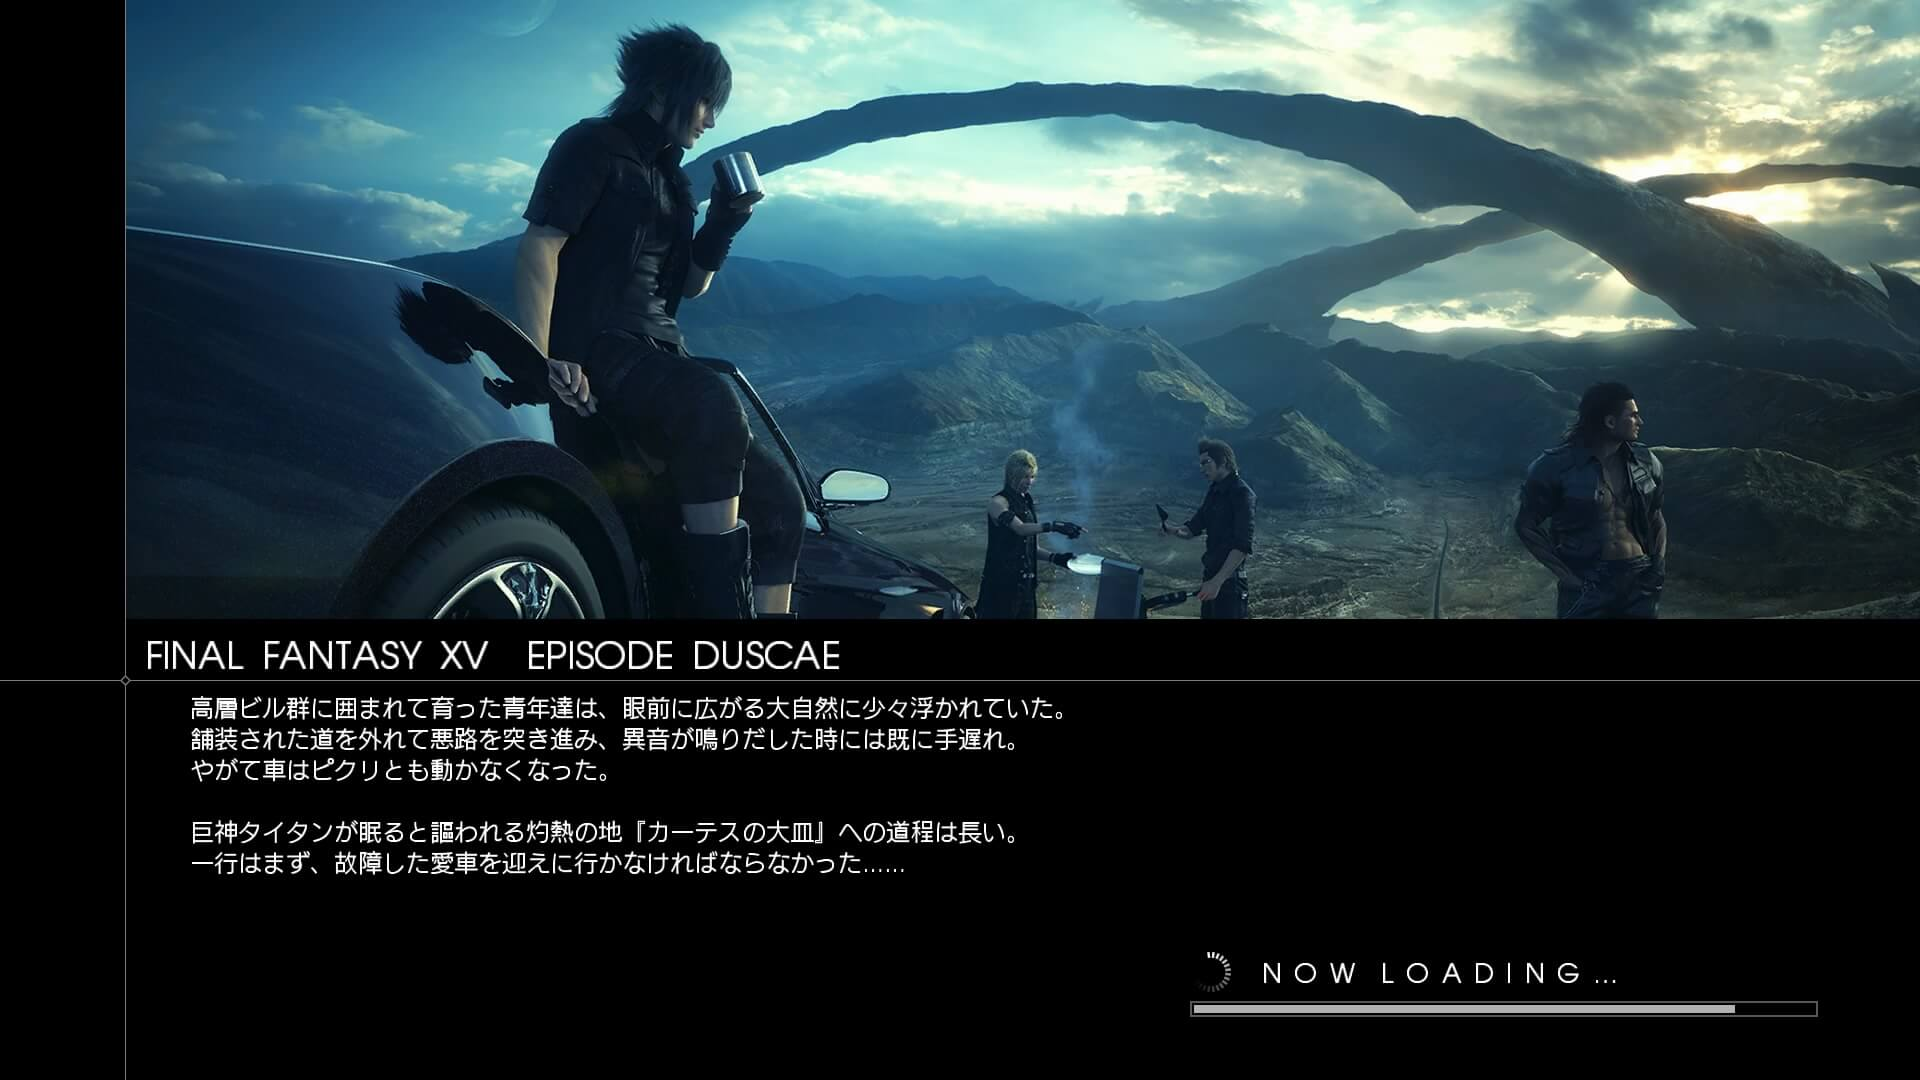 FINAL FANTASY XV EPISODE DUSCAE_20150320222214